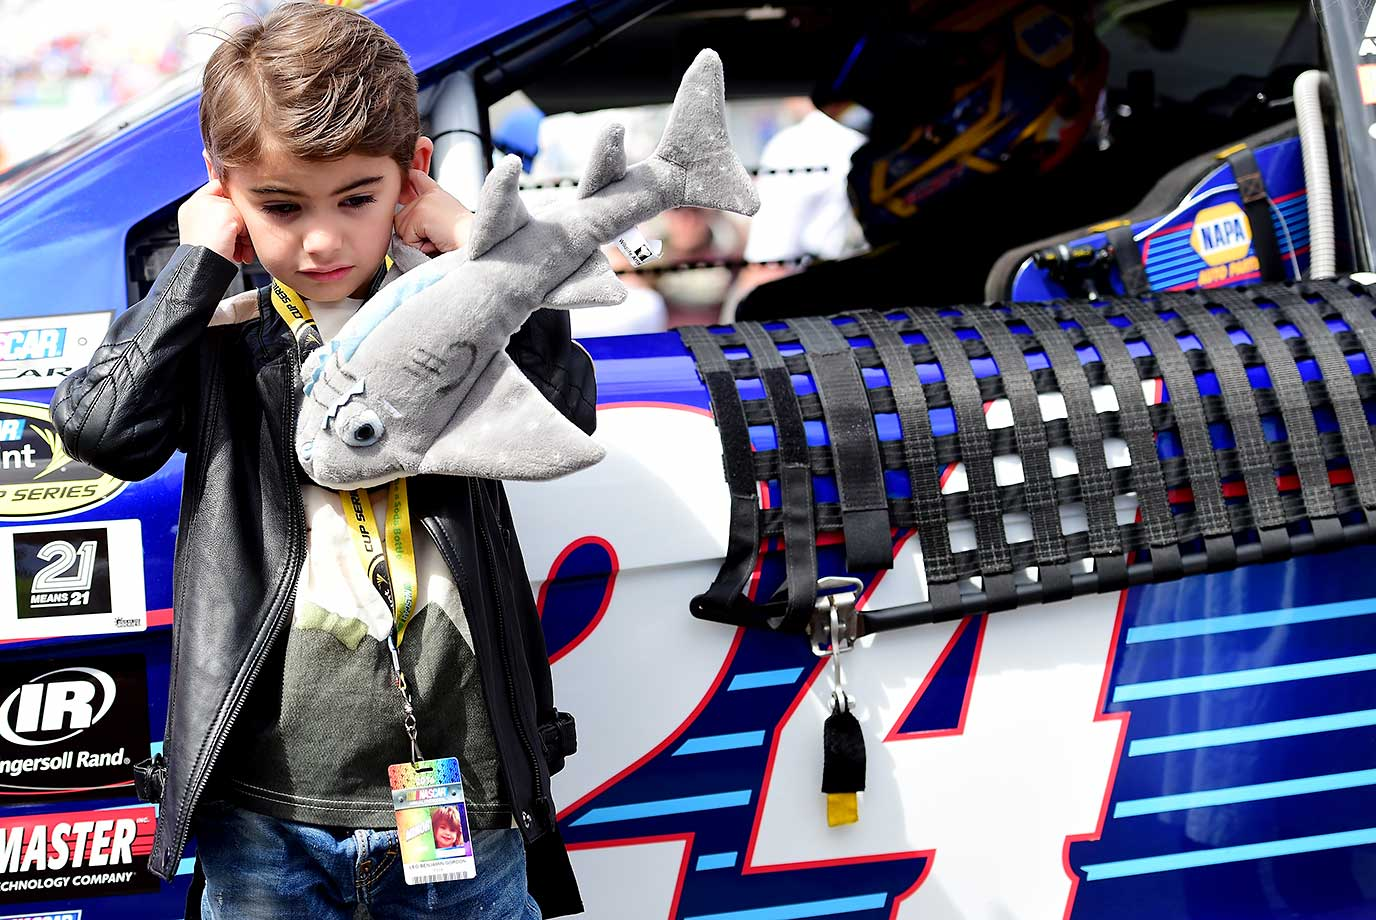 Leo Gordon, son of Jeff Gordon, stands on the grid prior to the start of the race.